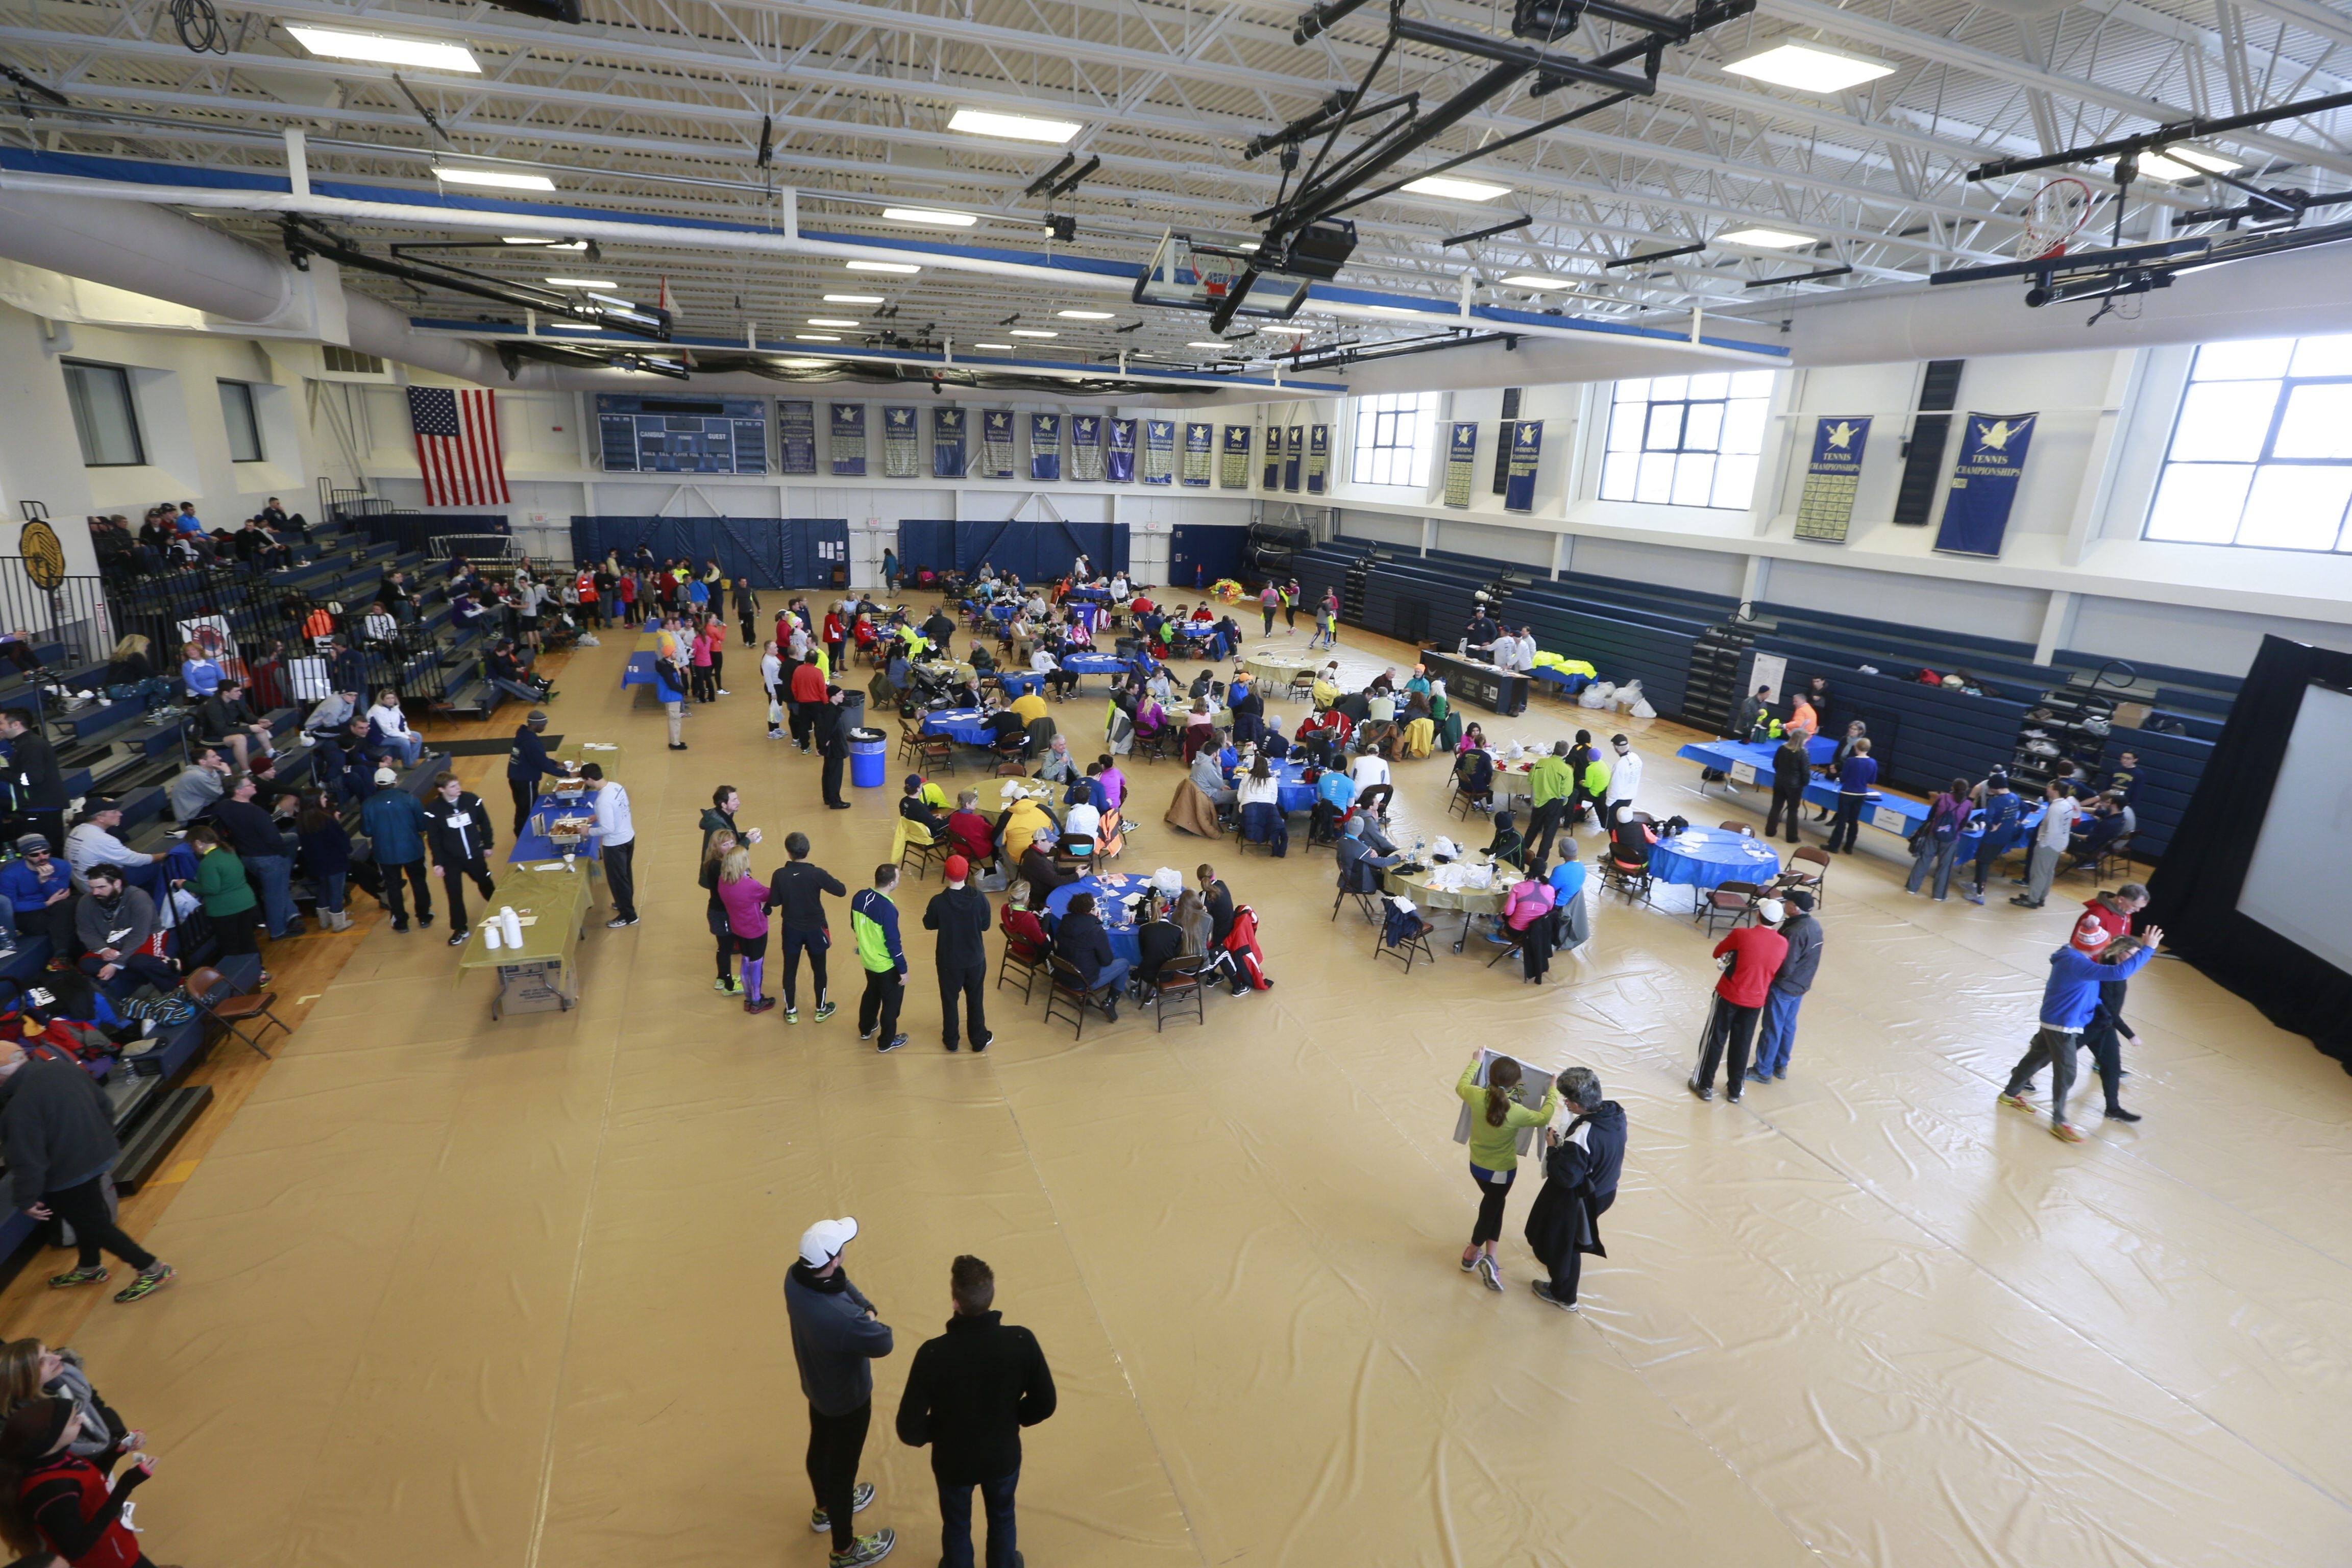 Everyone eats chili at the Chilly Challenge at Canisius High School. This year, though, they'll be doing it earlier than usual.